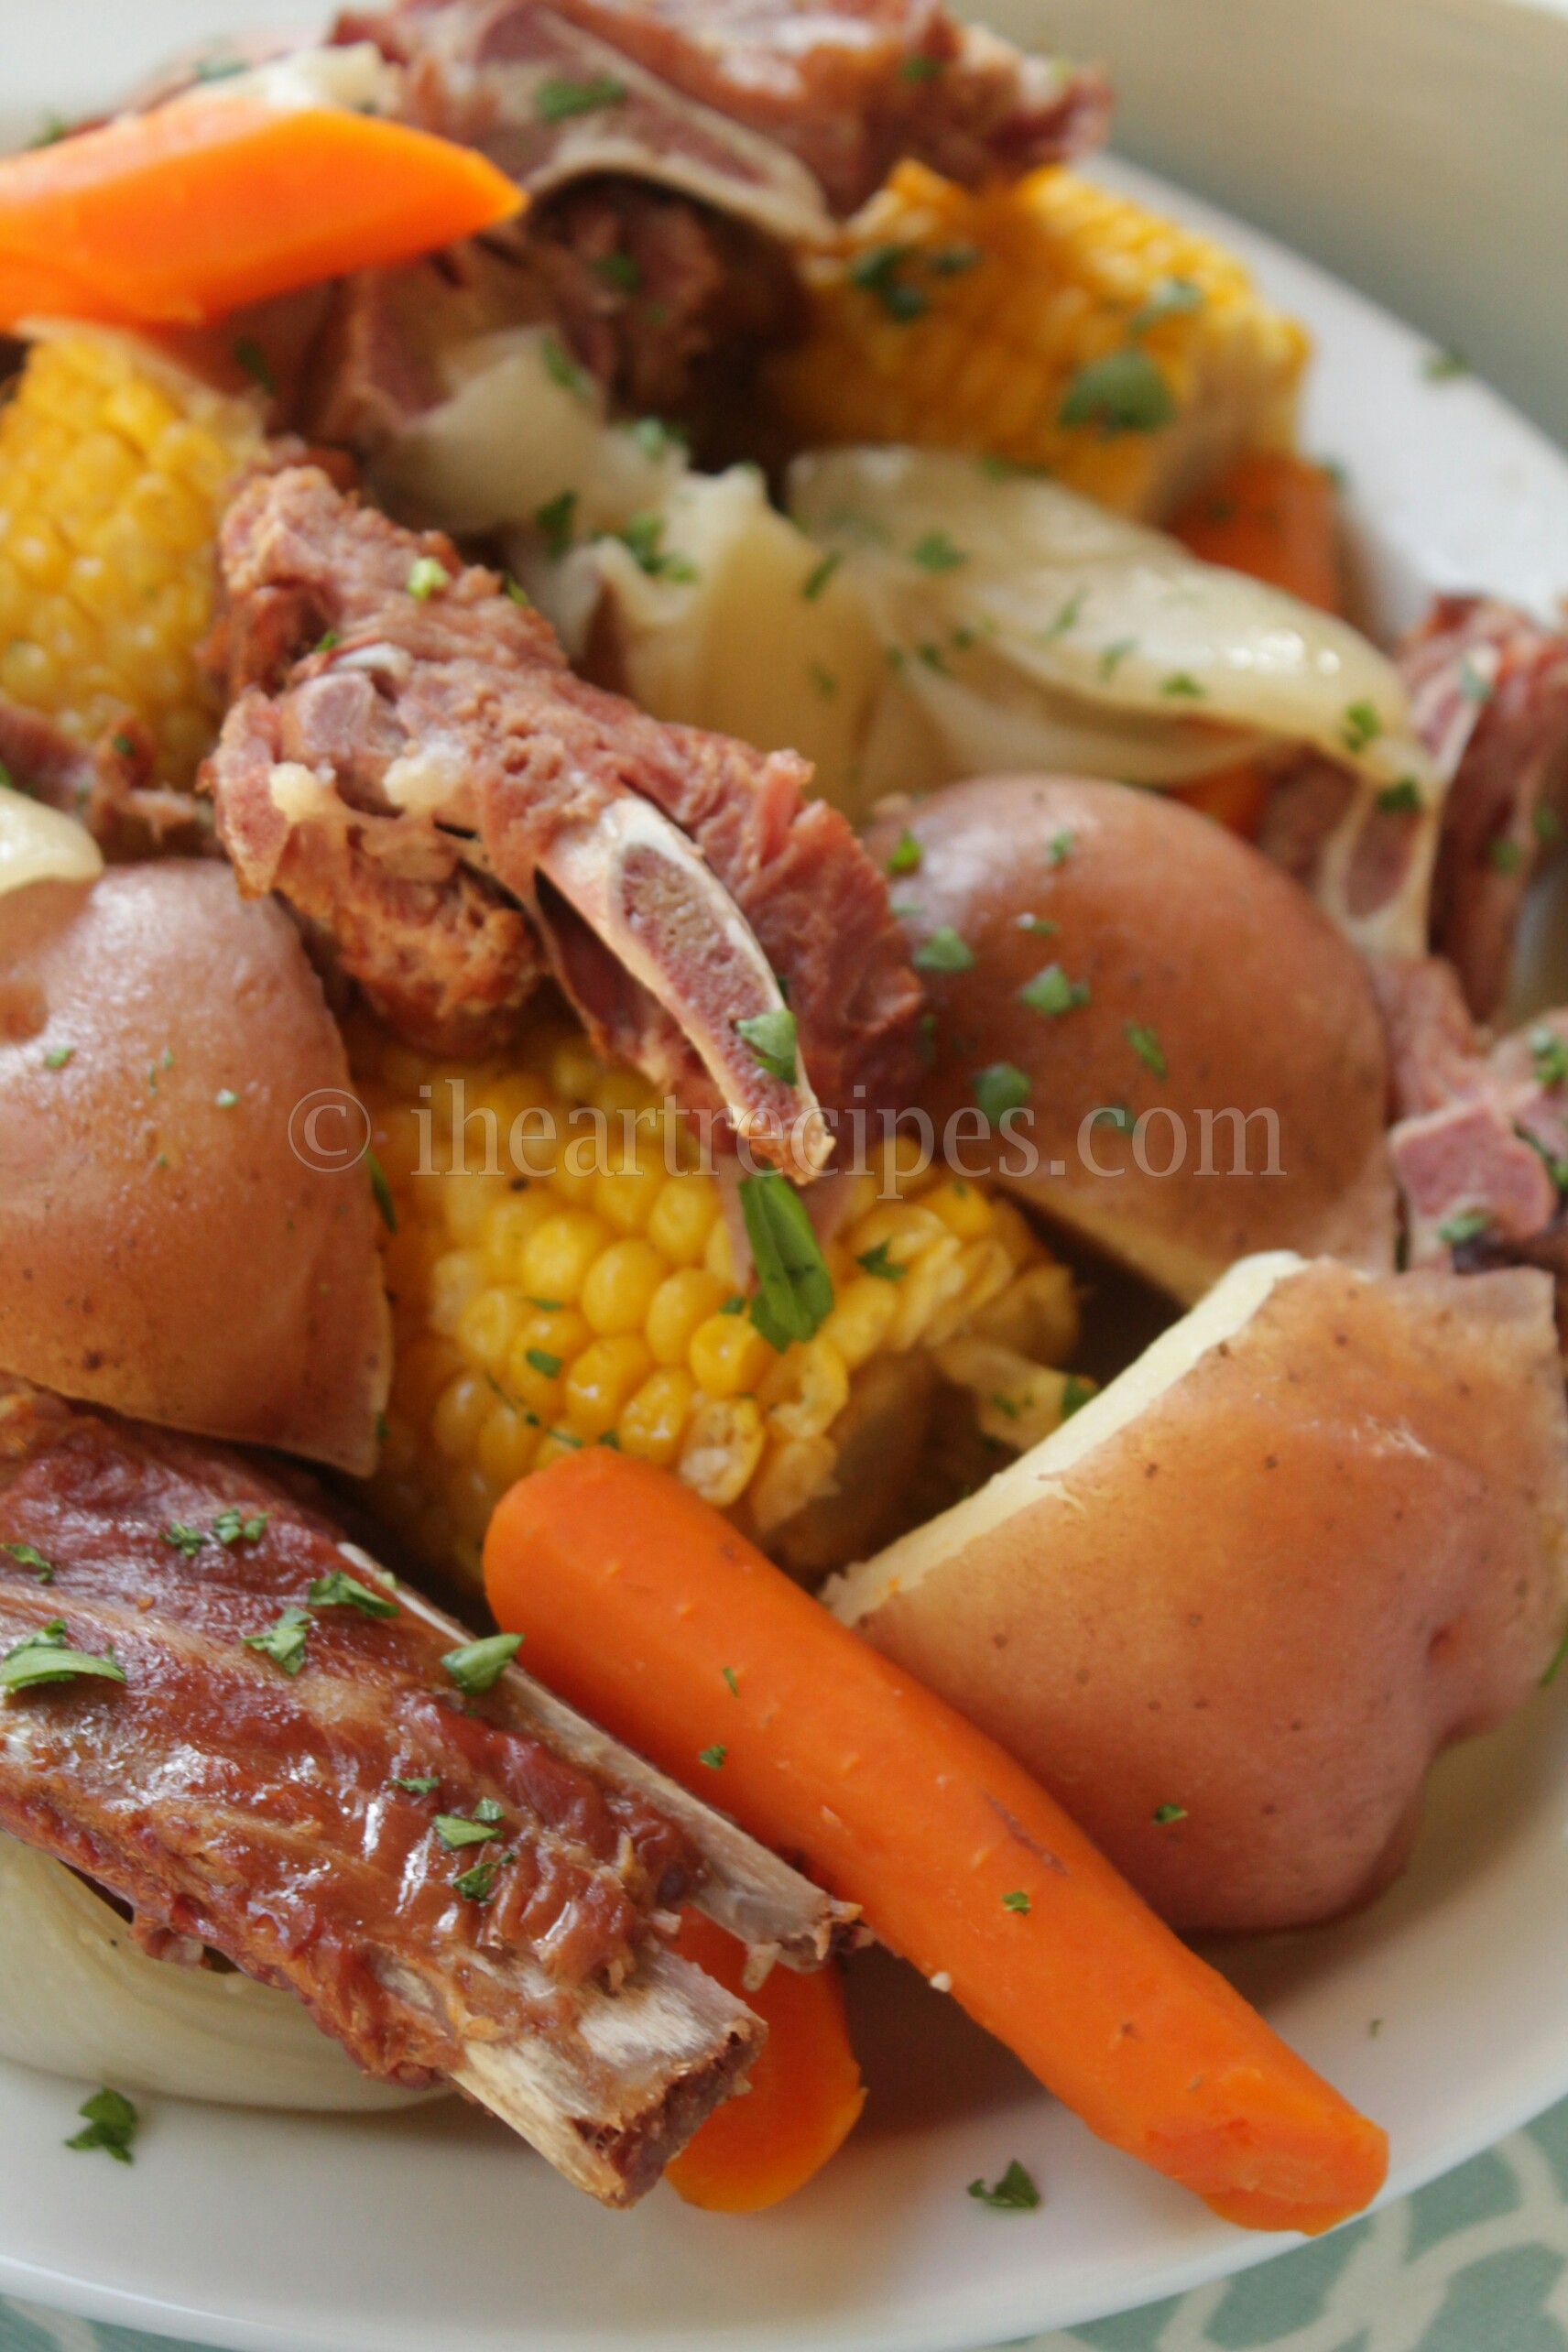 Slow cooker pork neck and veggies